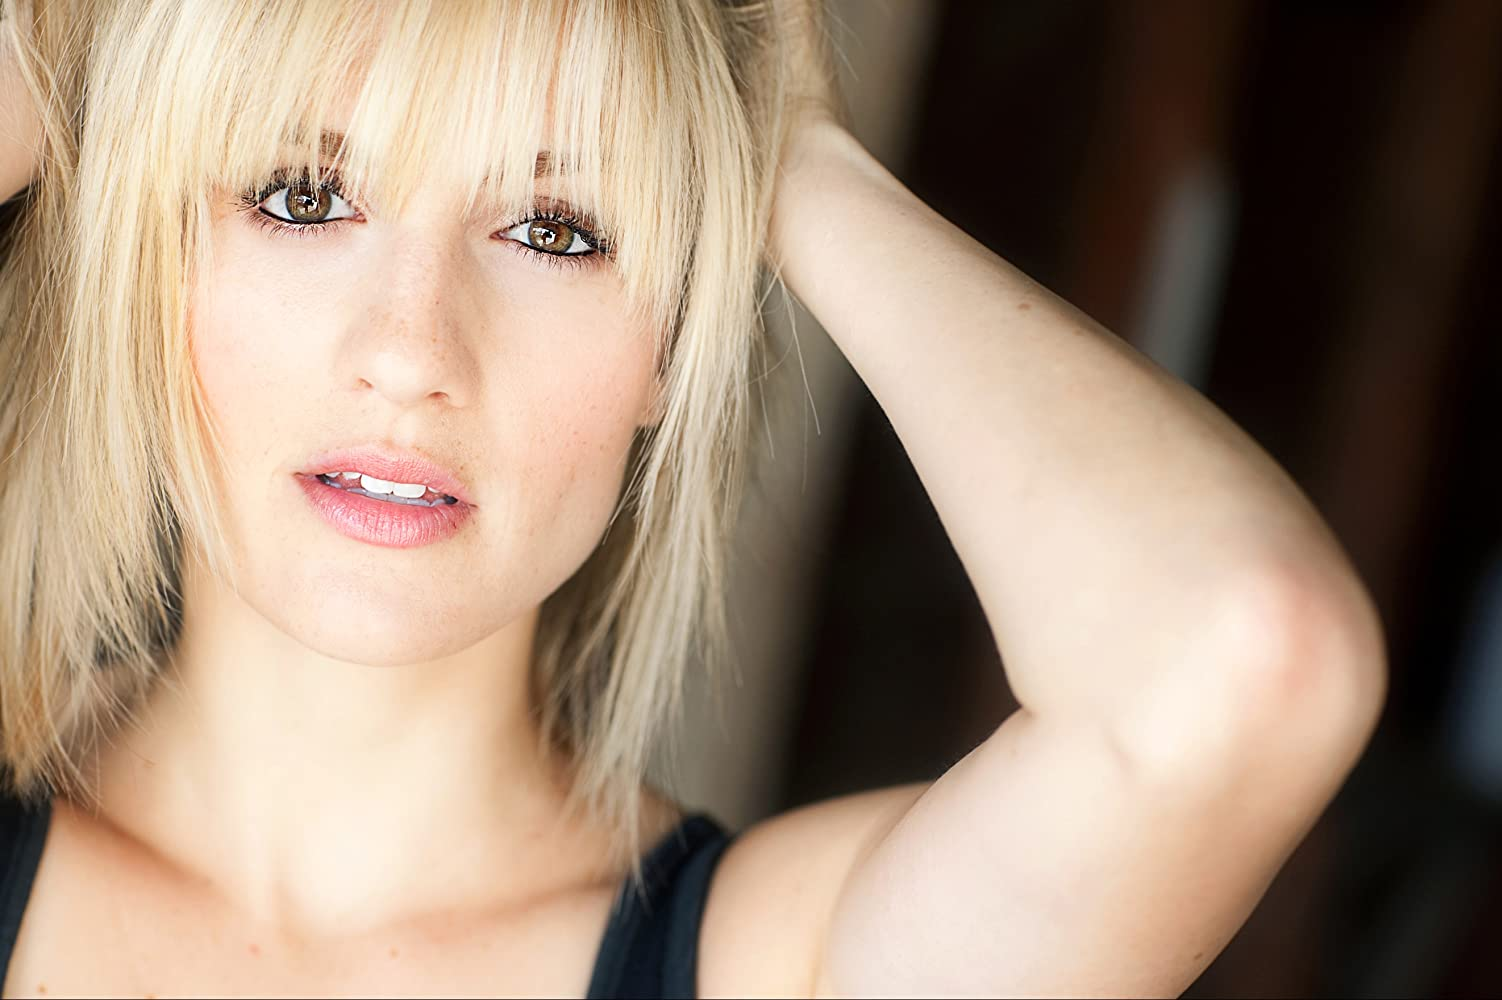 alison haislip iphone